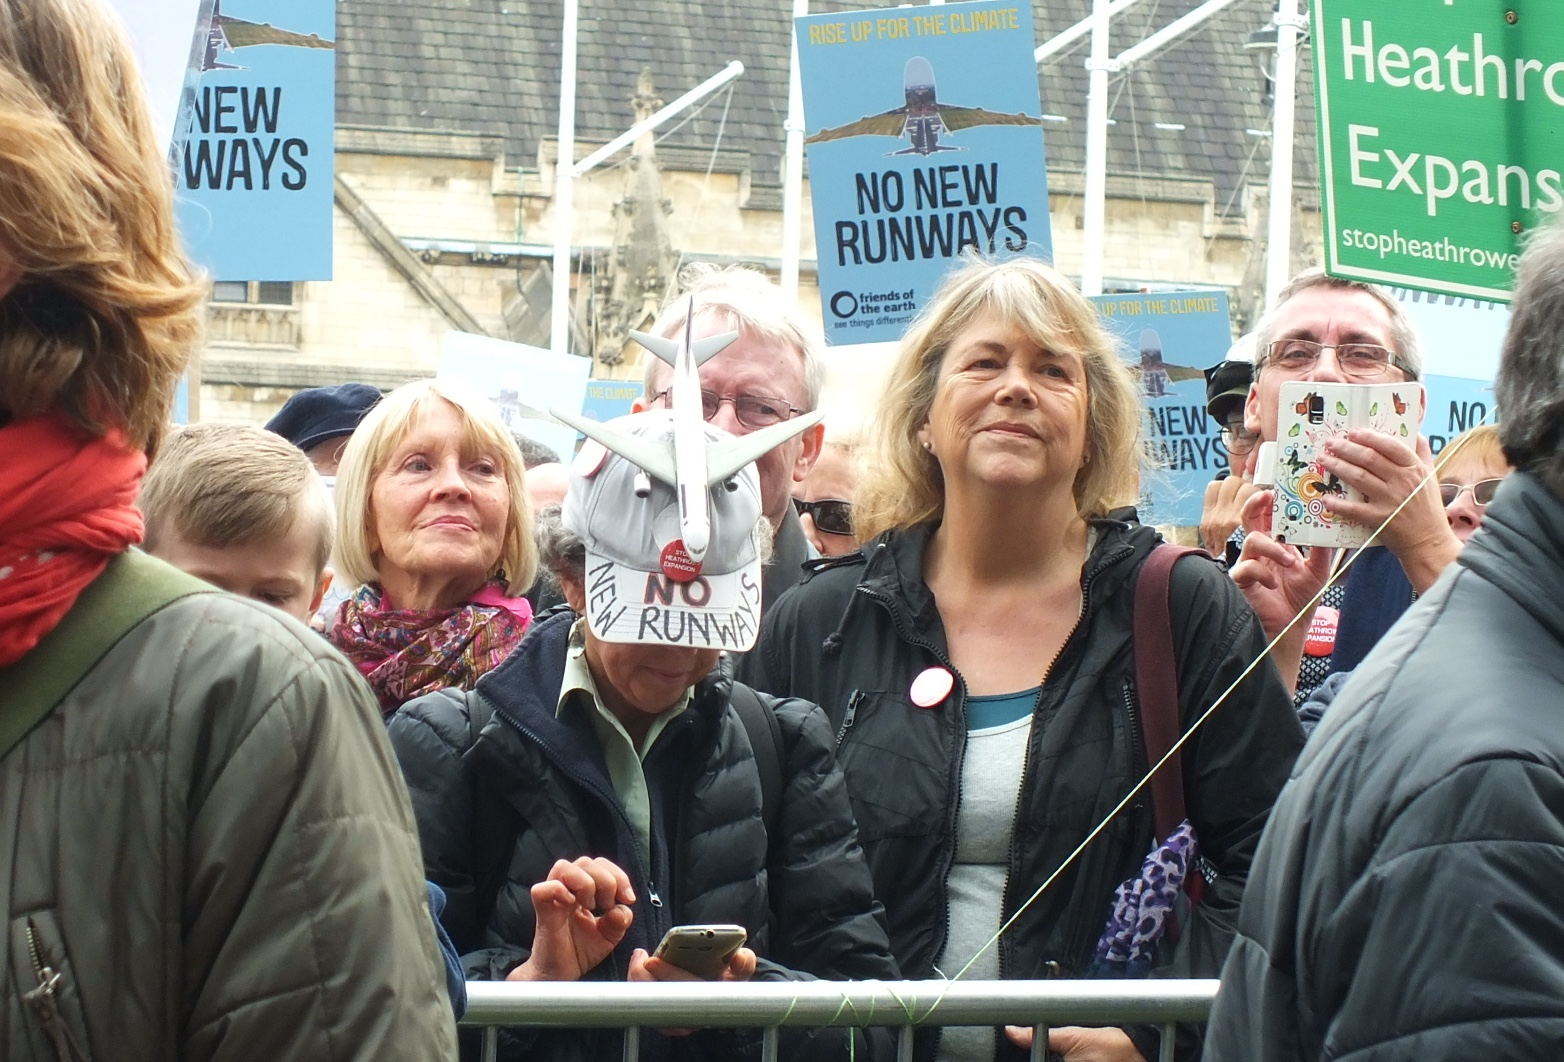 Members of the crowd were keen to spread the word to those who couldn't attend but were following on Twitter.